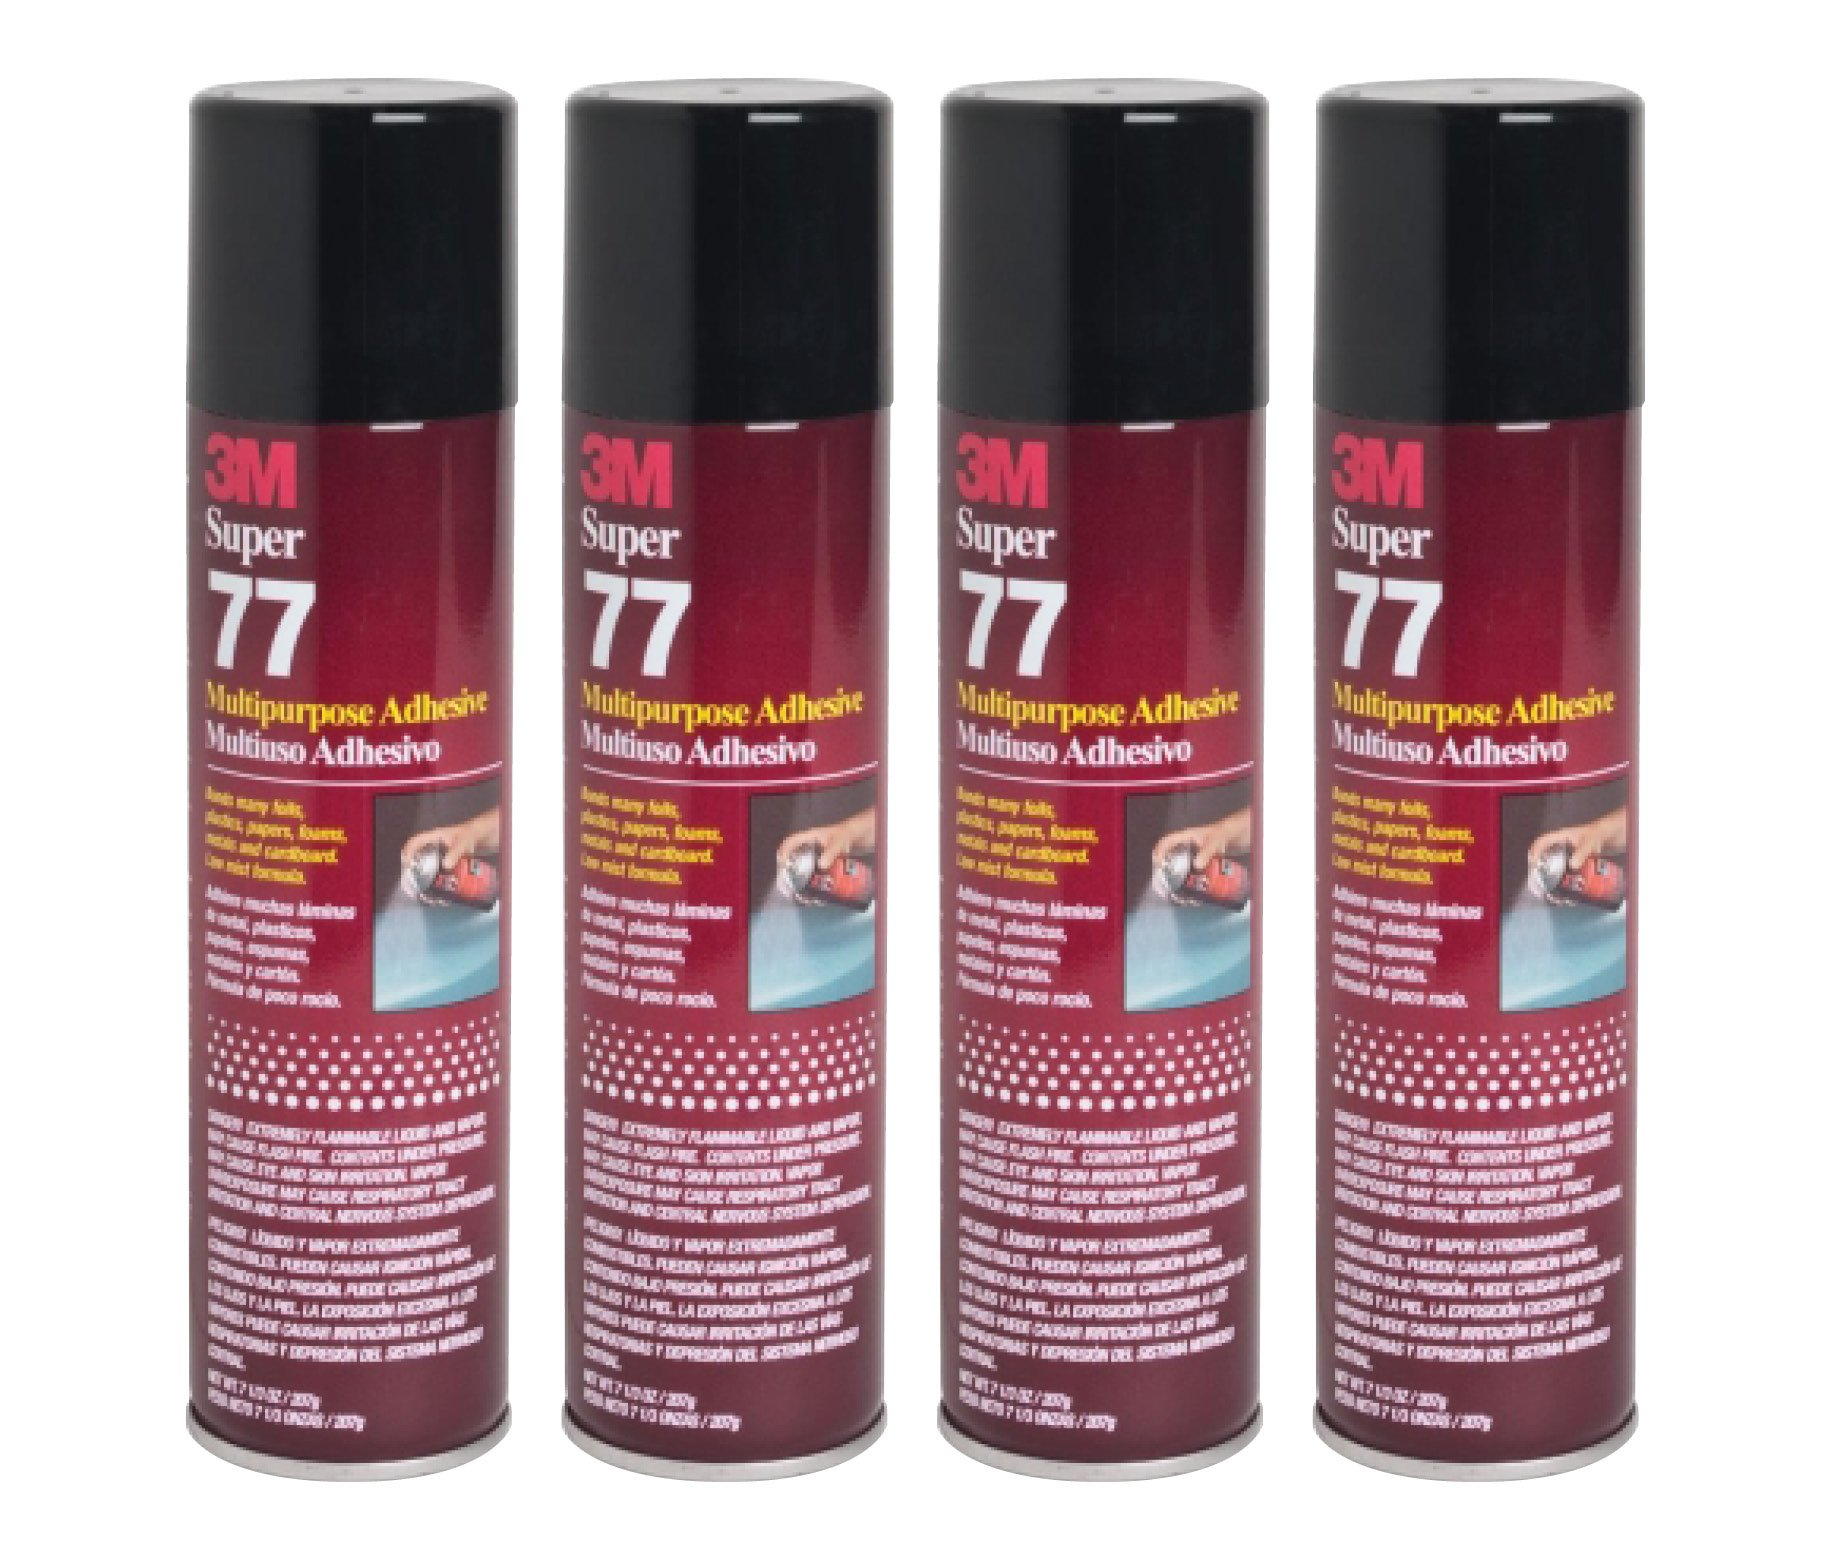 QTY4 3M SUPER 77 7.3oz LARGE SPRAY GLUE ADHESIVE for SPEAKER BOX ENCLOSURE by 3M SUPER 77